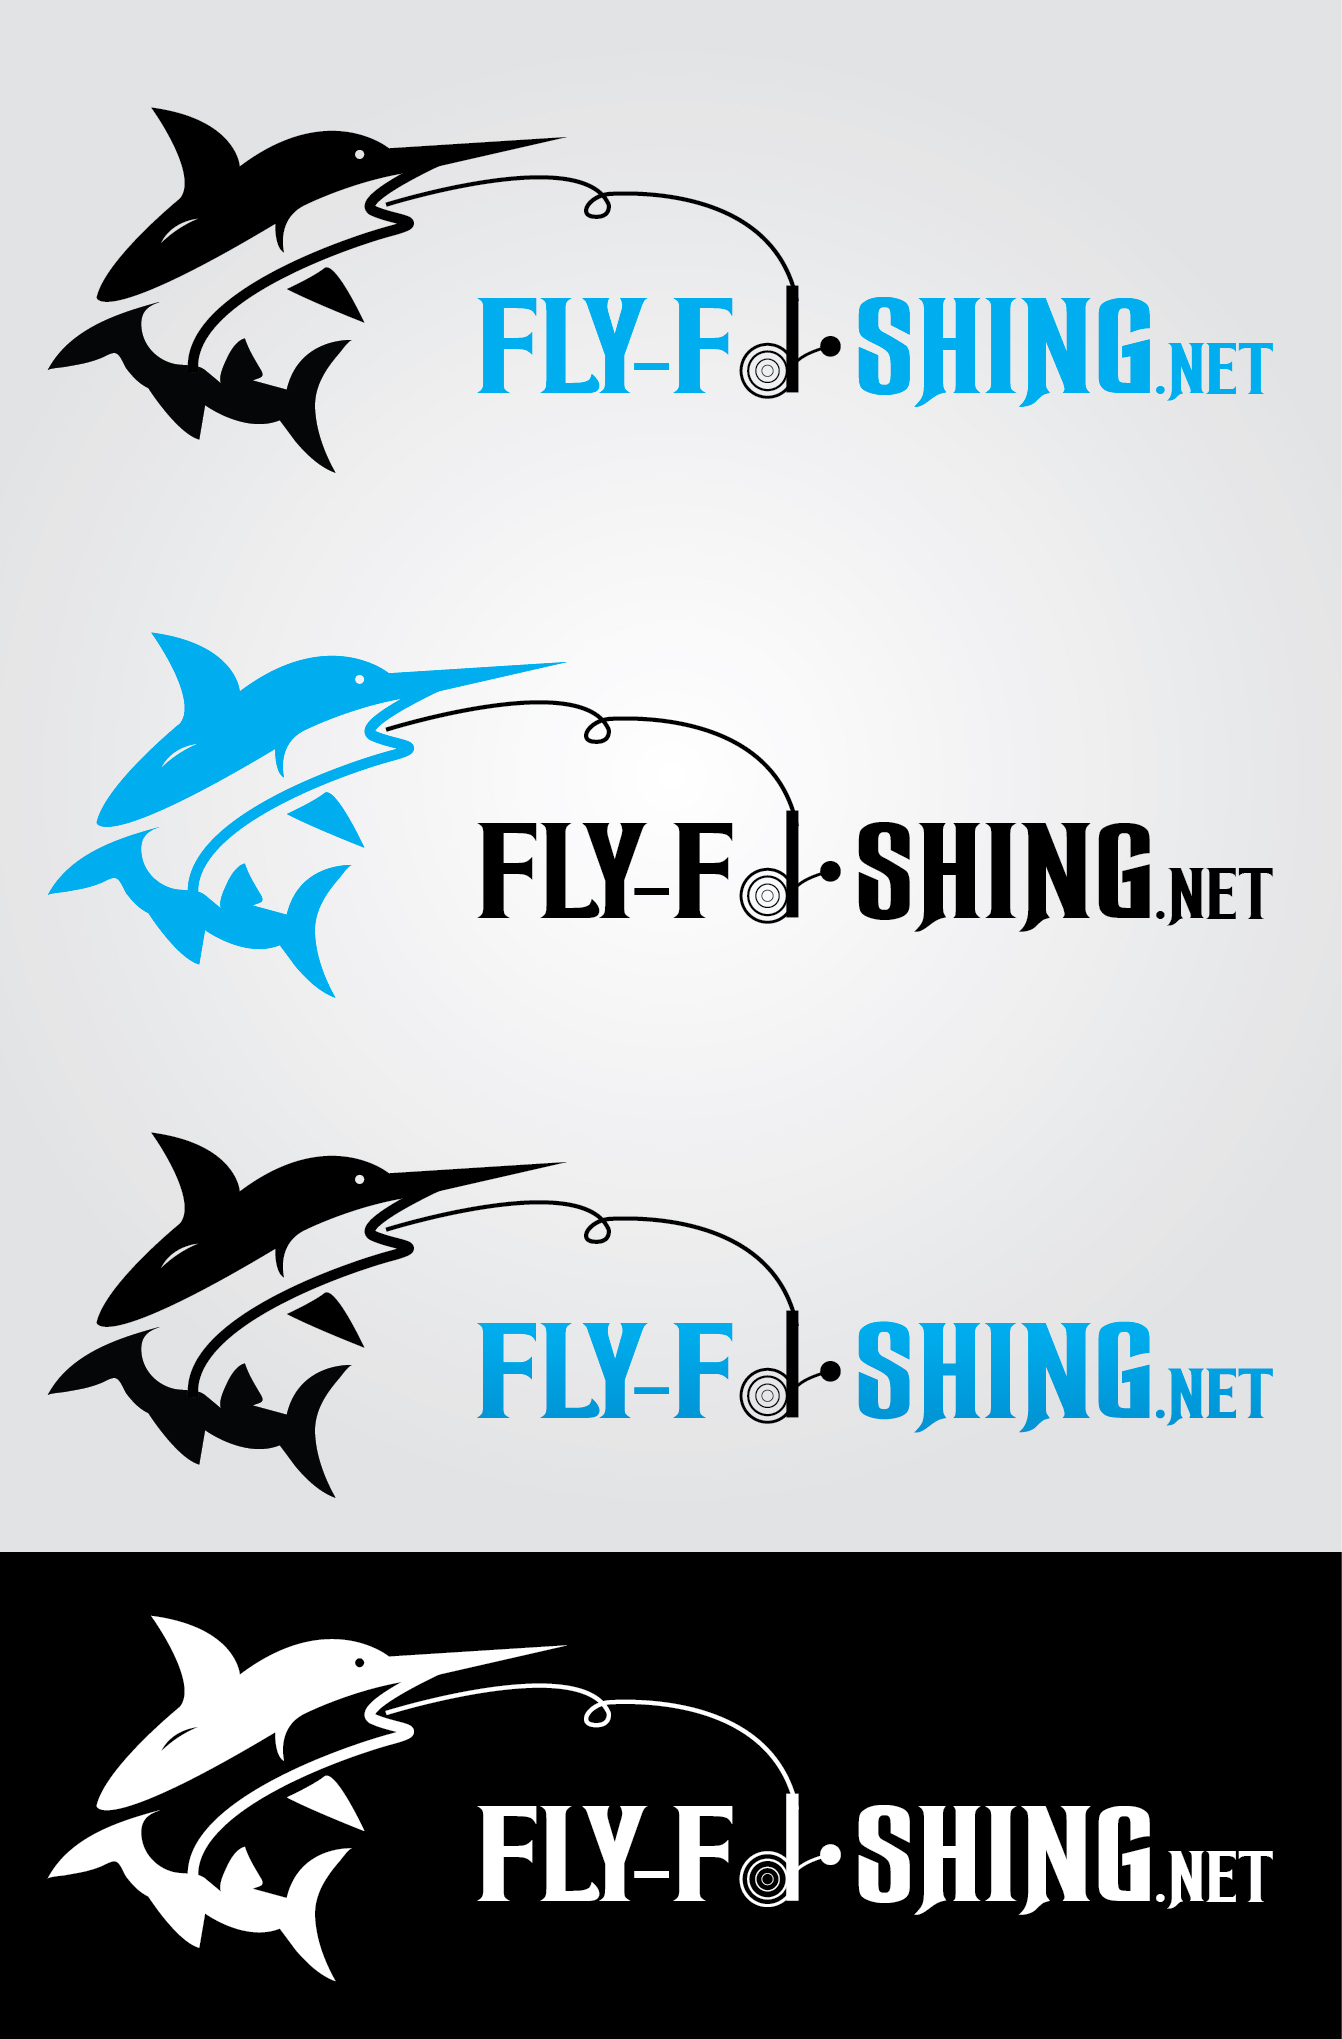 Logo Design by mediaproductionart - Entry No. 89 in the Logo Design Contest Artistic Logo Design for fly-fishing.net.